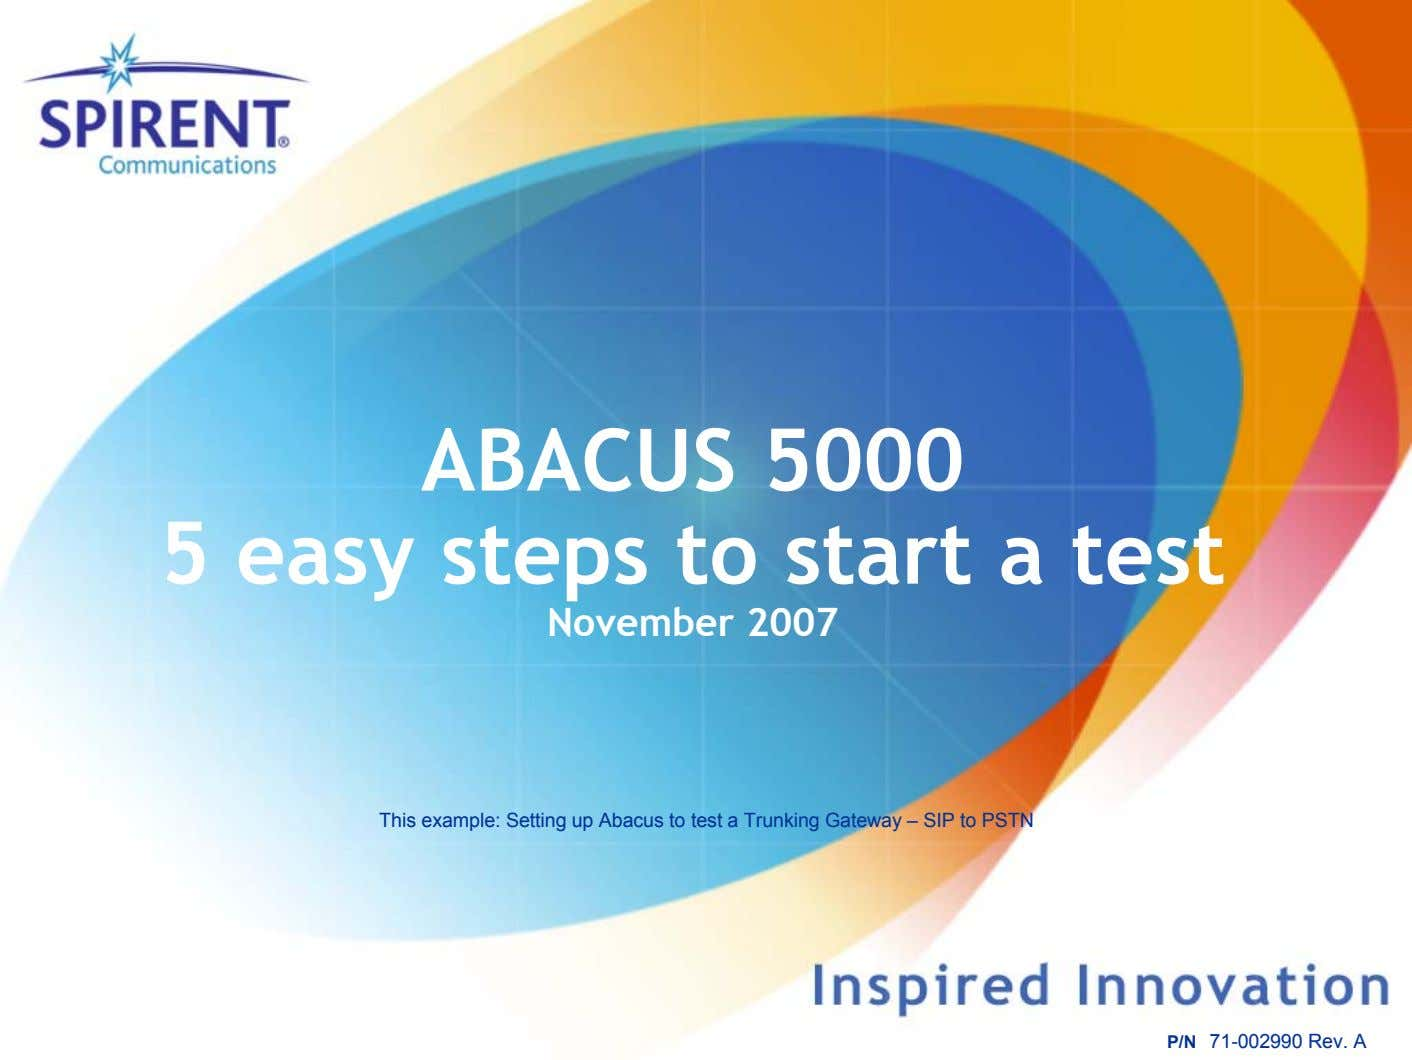 ABACUS 5000 5 easy steps to start a test November 2007 This example: Setting up